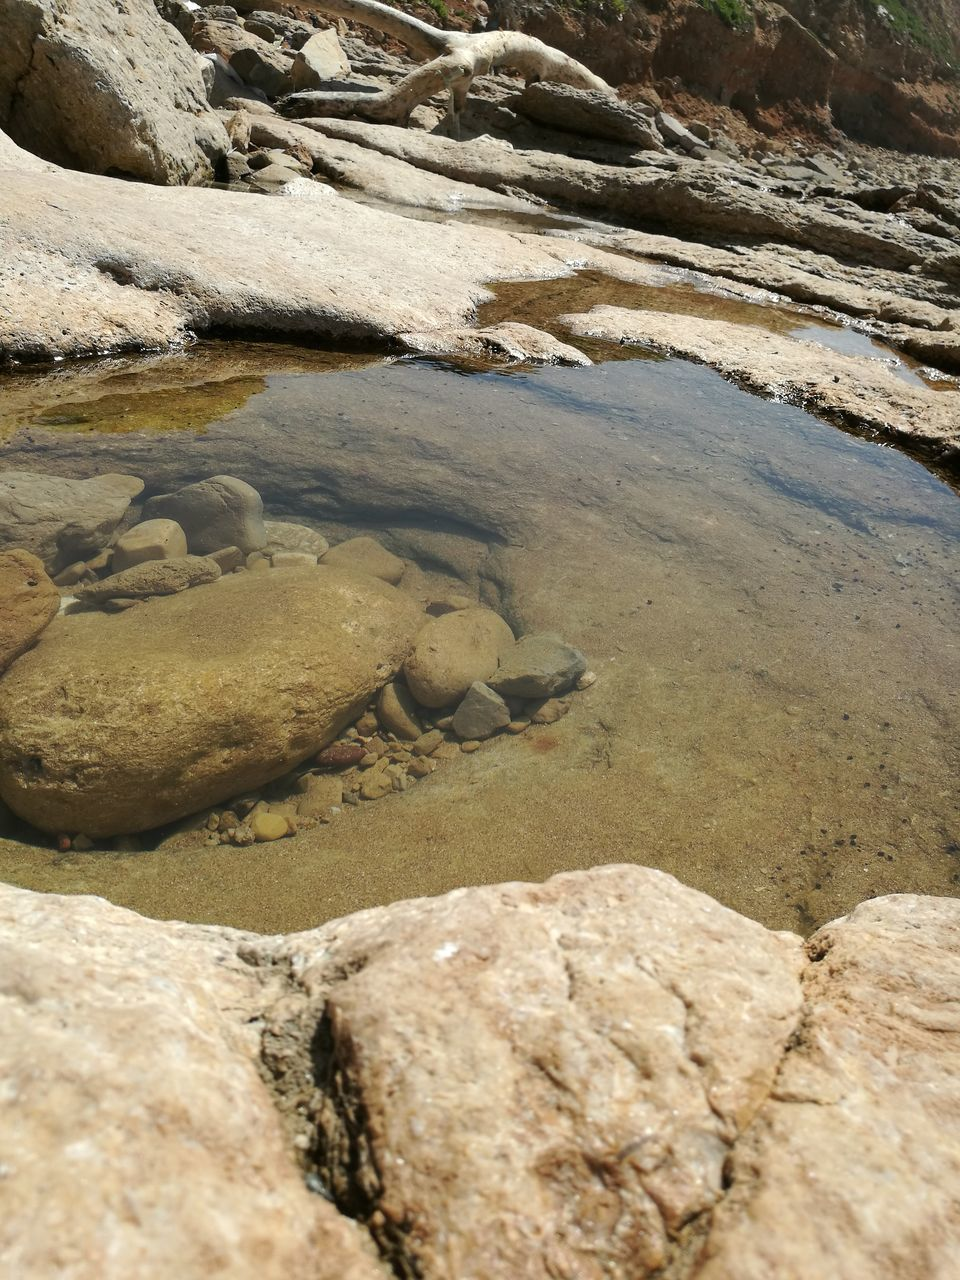 nature, water, high angle view, sunlight, outdoors, no people, day, beauty in nature, hot spring